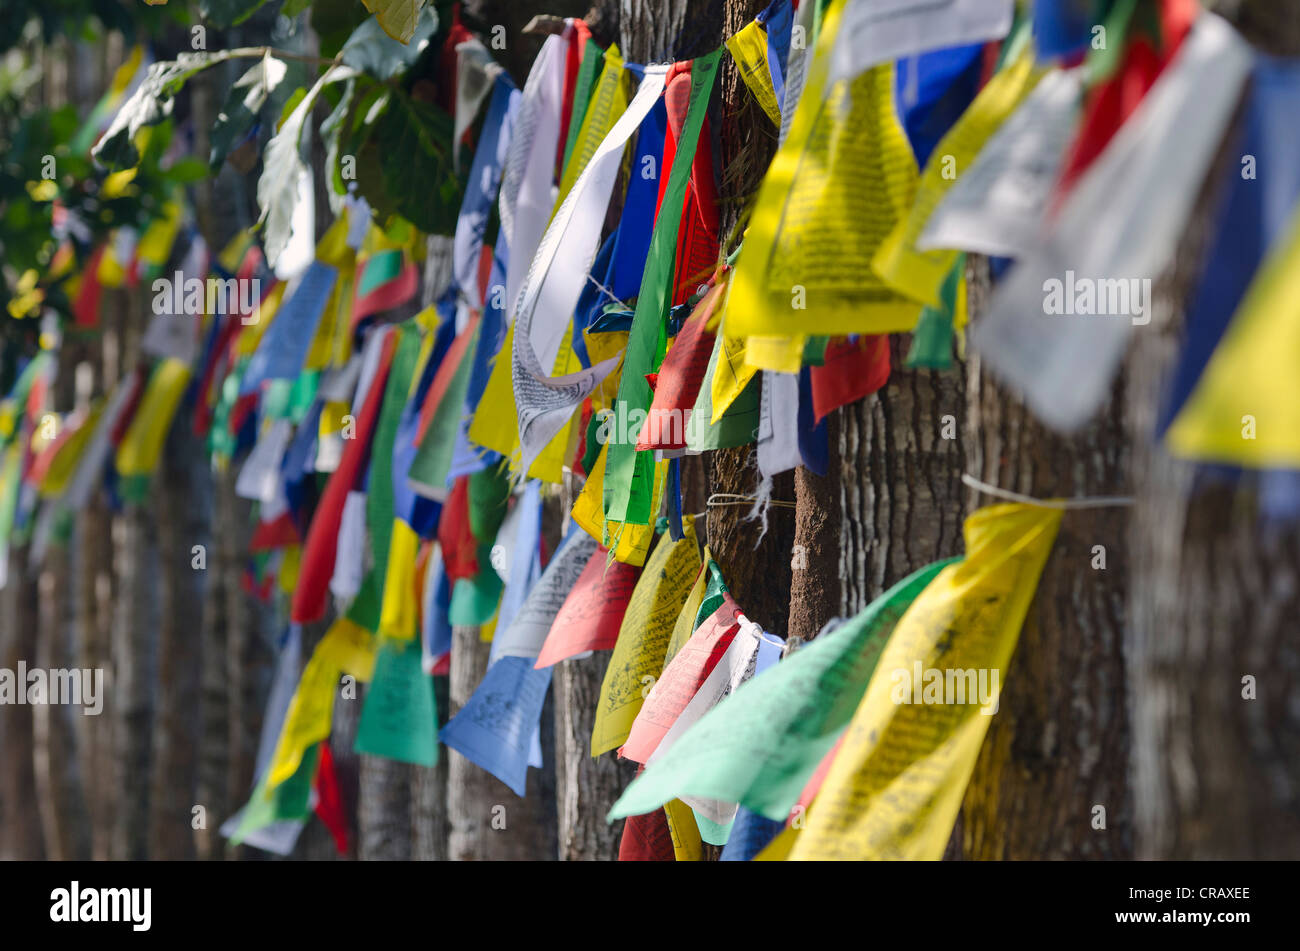 Prayer flags, Tibetan refugee settlement in Bylakuppe, Mysore District, Karnataka, South India, India, Asia - Stock Image